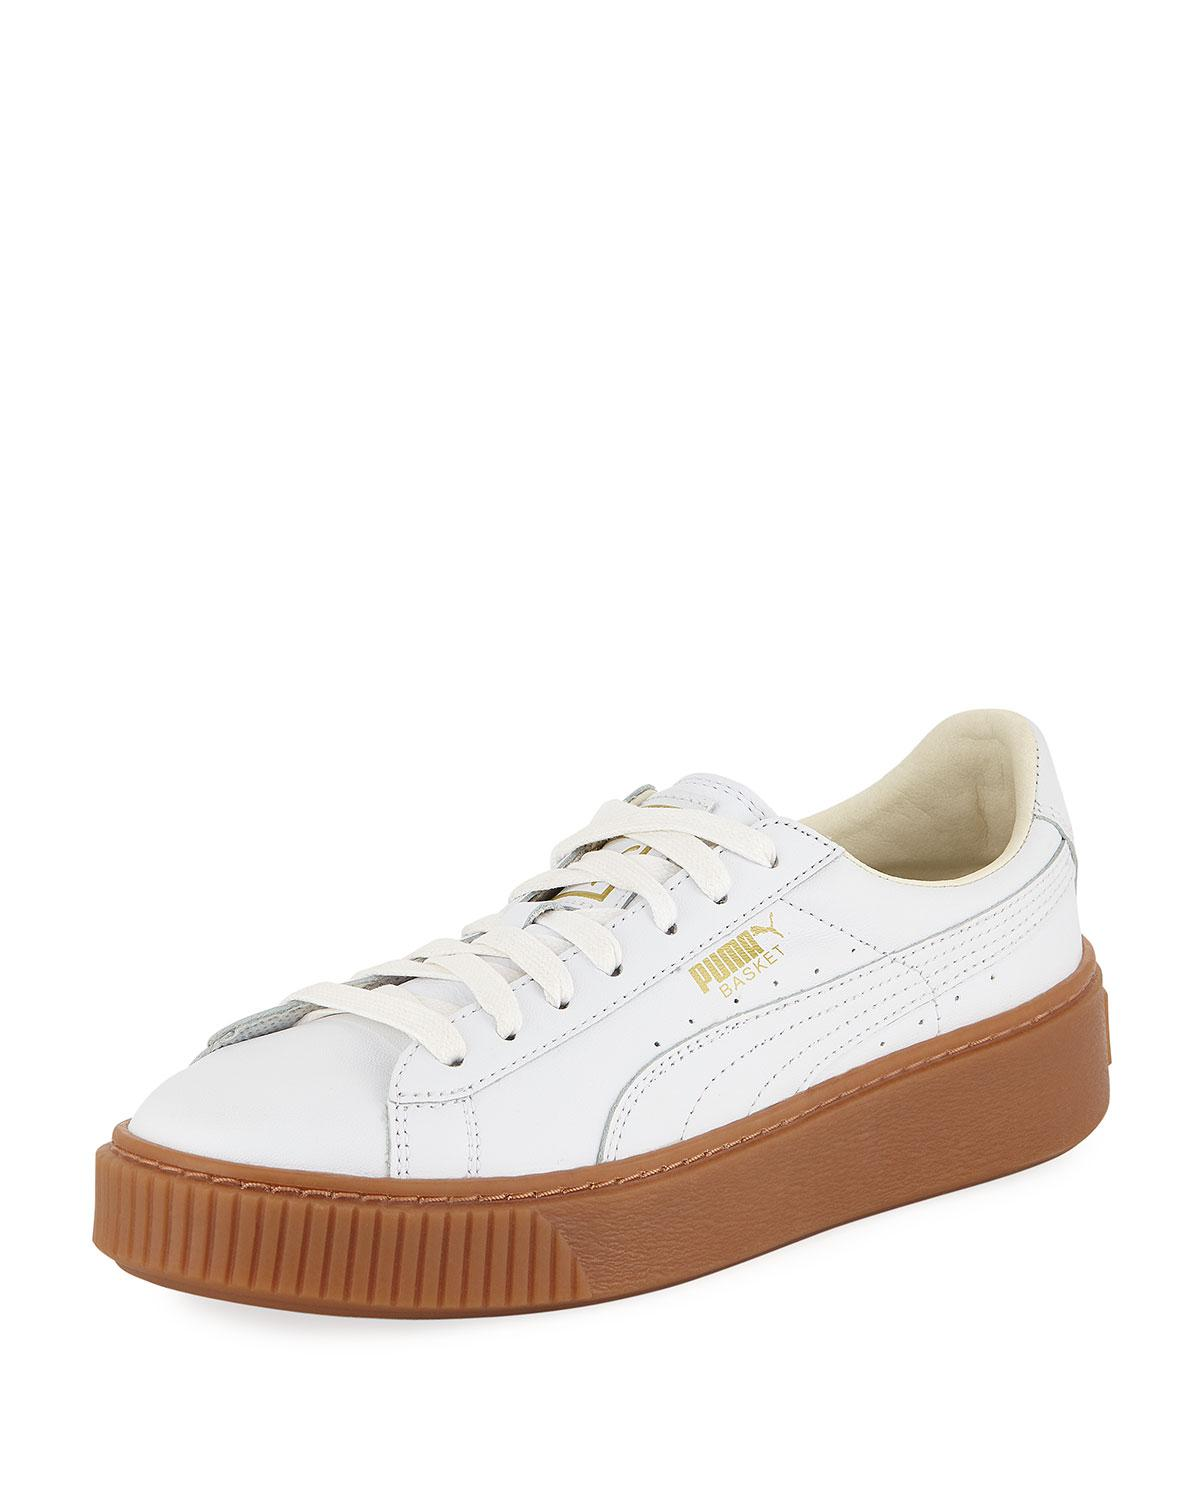 Lyst - PUMA Basket Leather Platform Sneakers in White b57414dc5